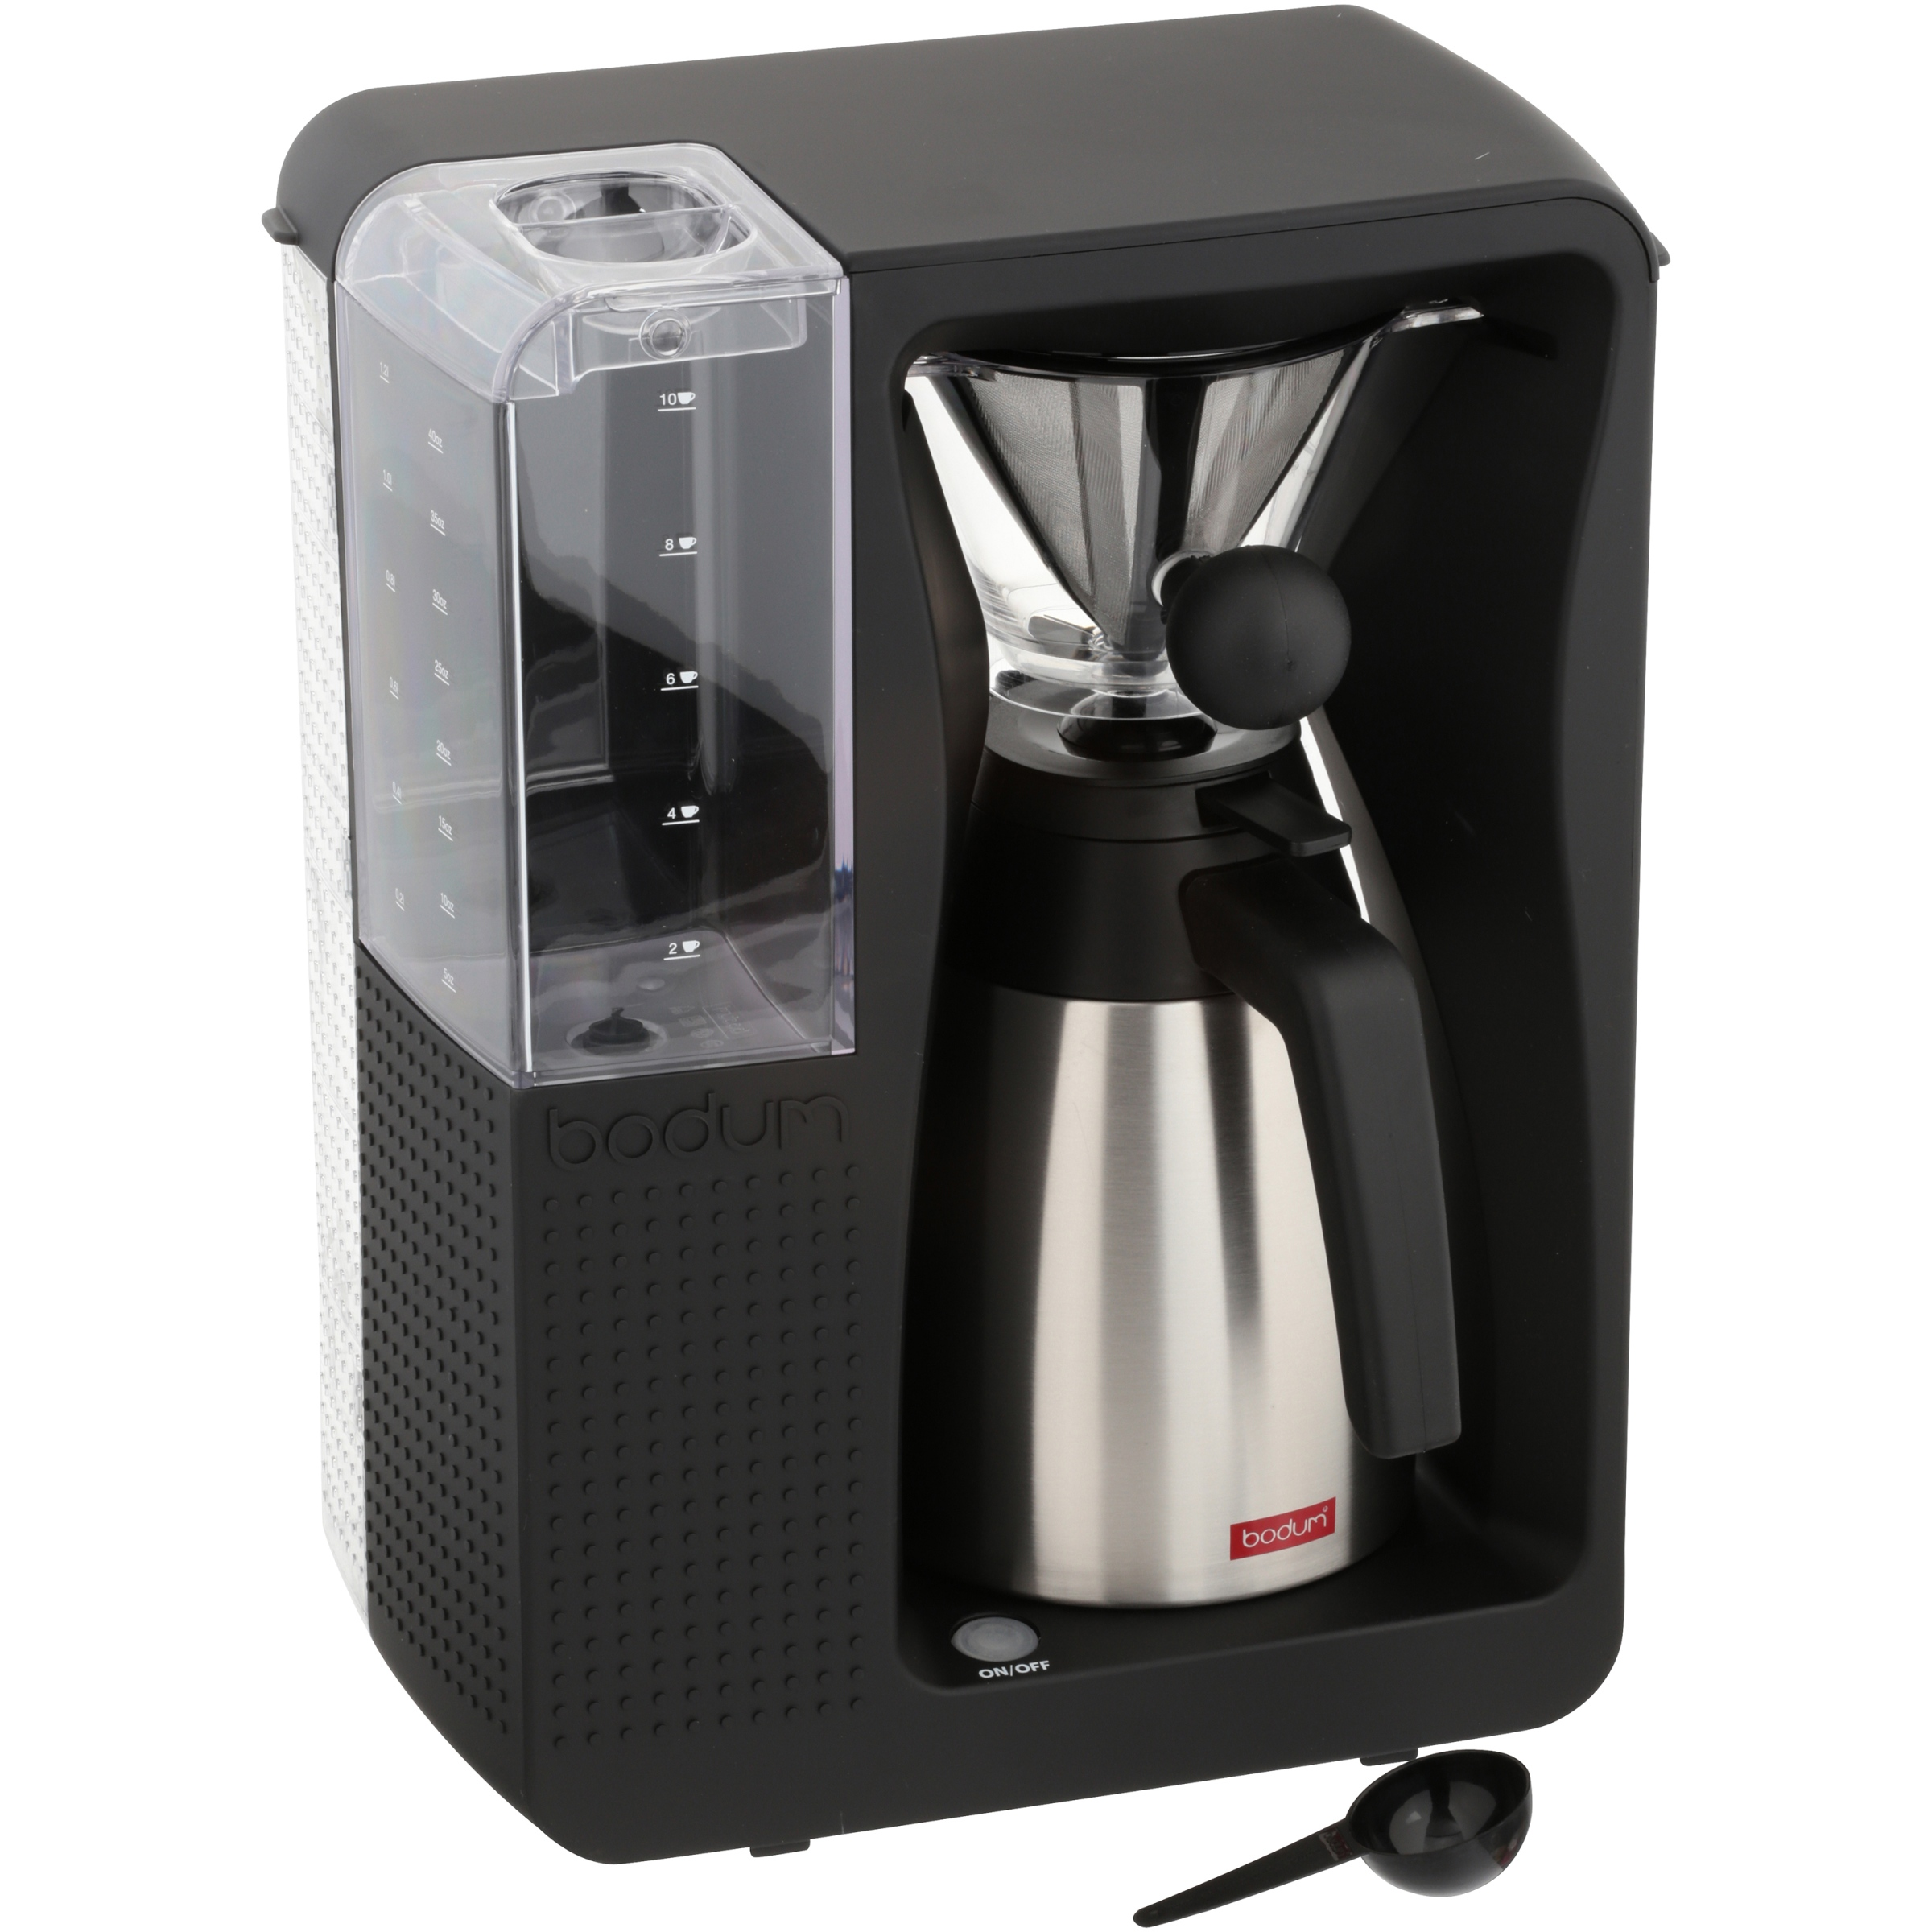 bodum bean 11080 coffee makers owners manual data set. Black Bedroom Furniture Sets. Home Design Ideas